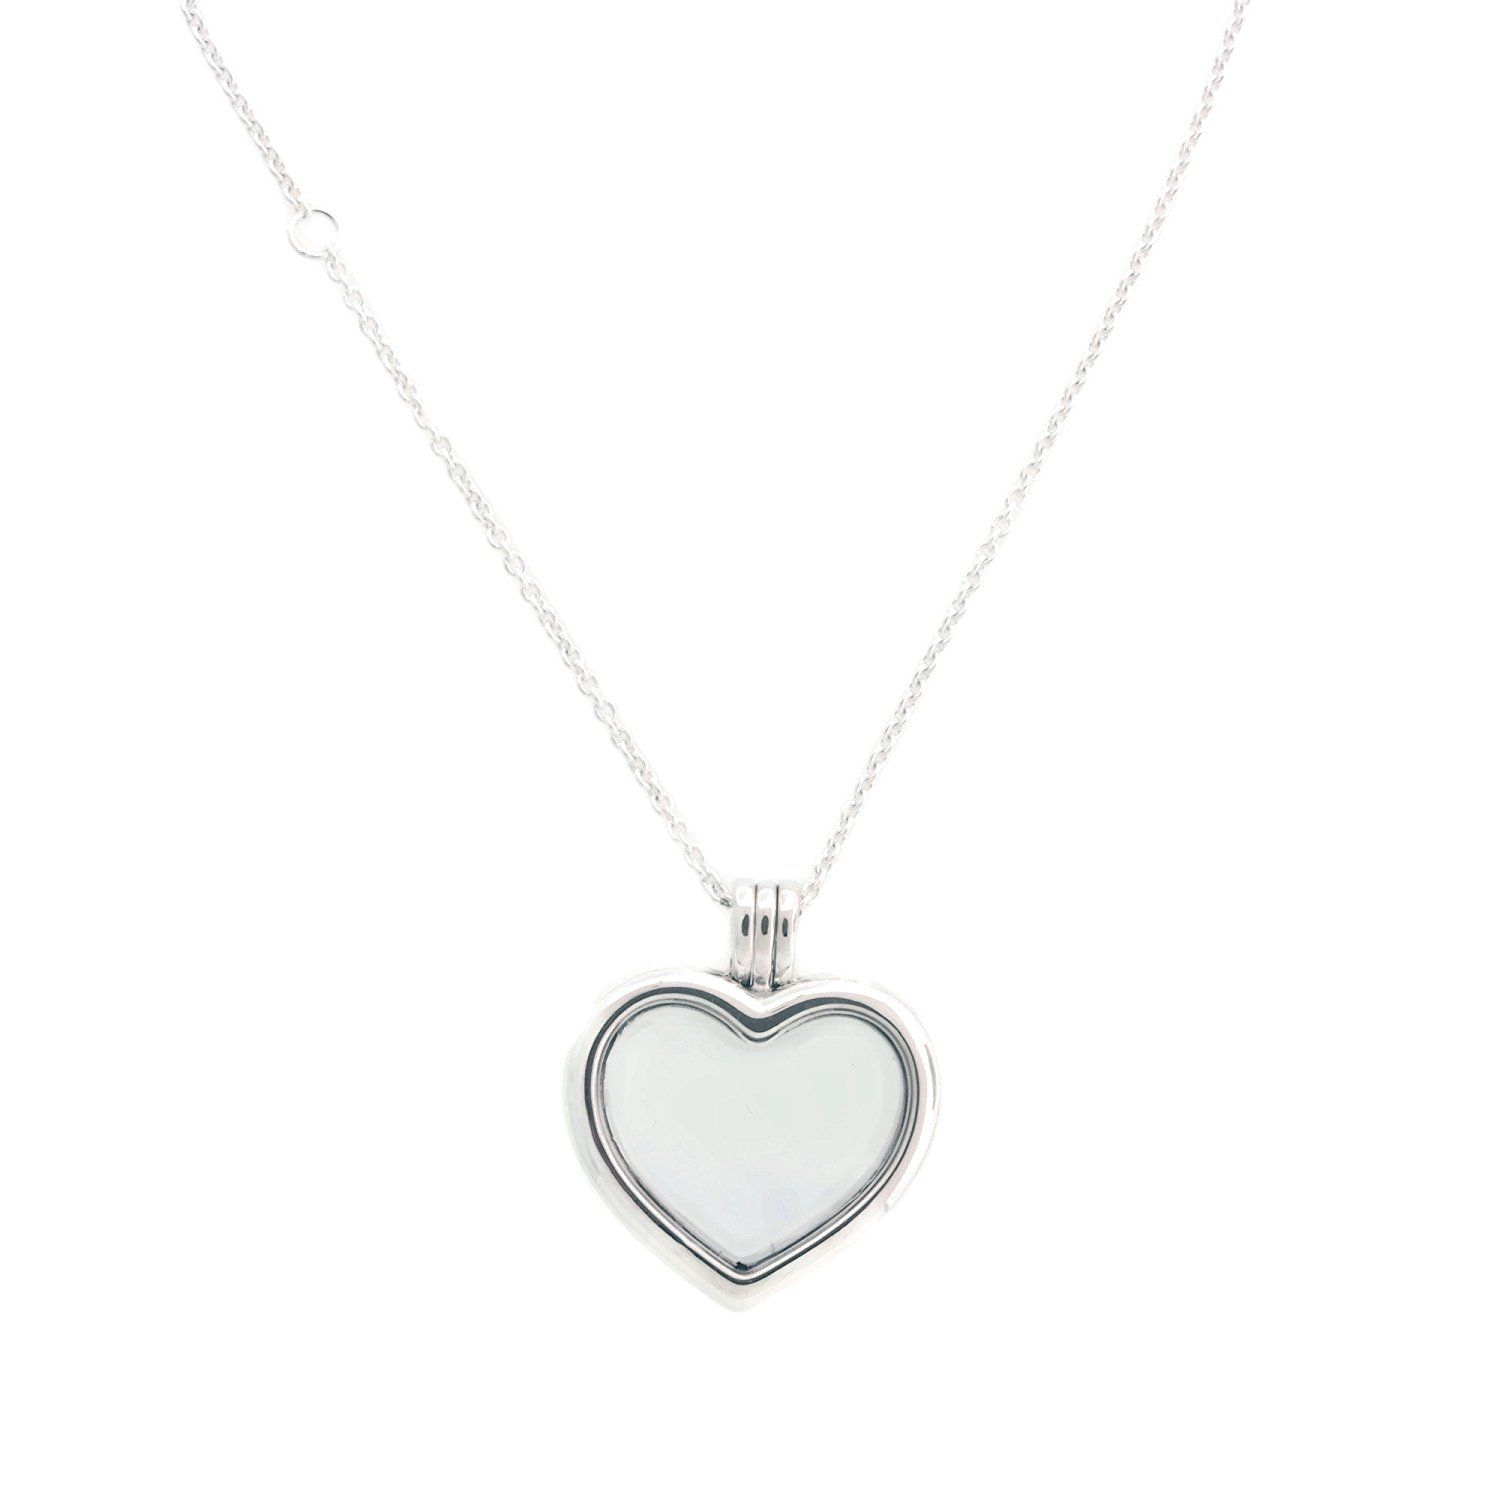 Pandora Floating Heart Locket, Sapphire Crystal Glass #jewelrylover In 2019 Interlocked Hearts Locket Element Necklaces (View 5 of 25)